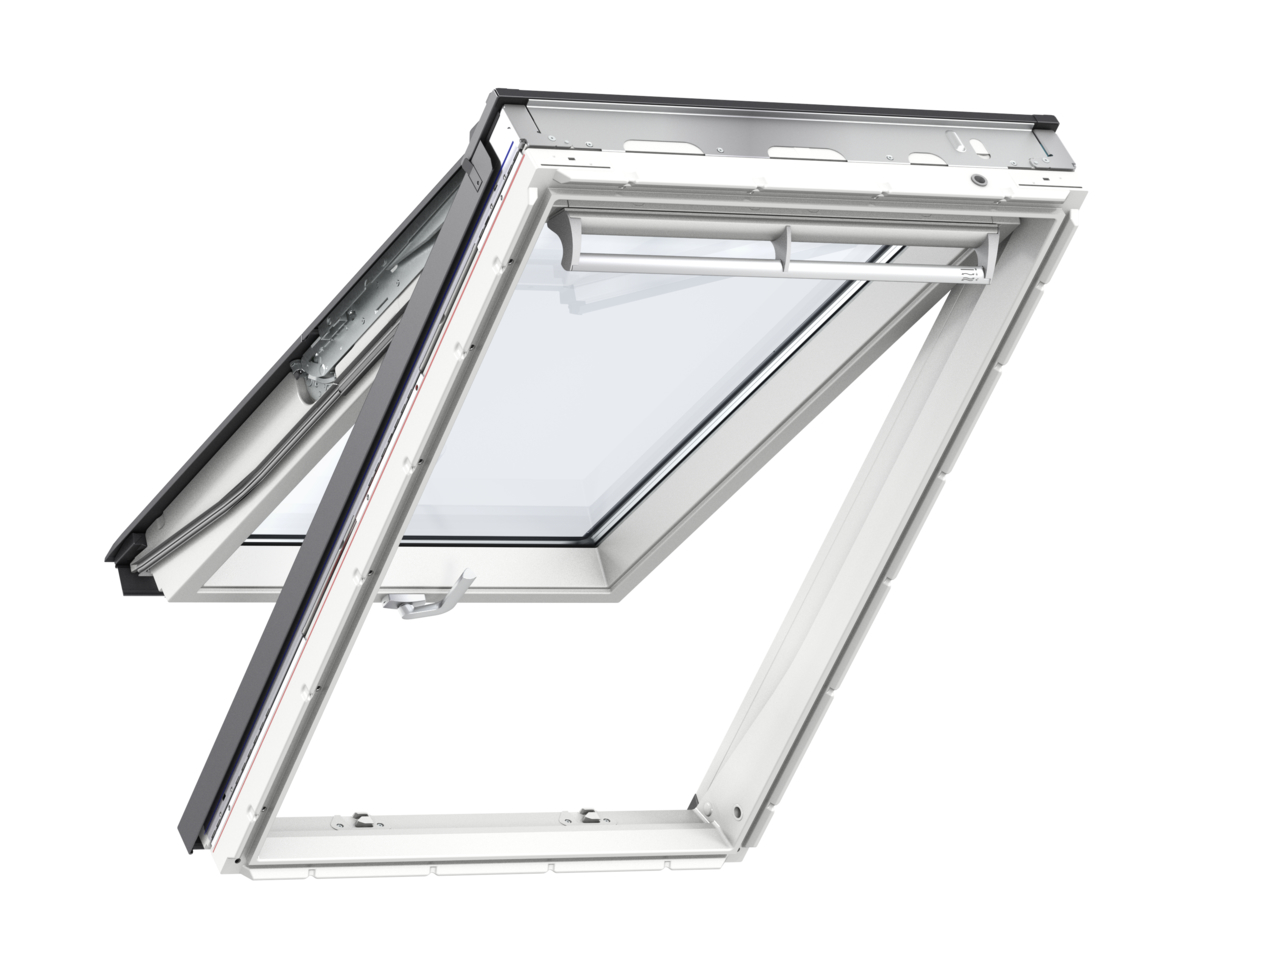 Velux GPU MK04 780 x 980mm Top Hung 66Pane Roof Window - White Polyurethane